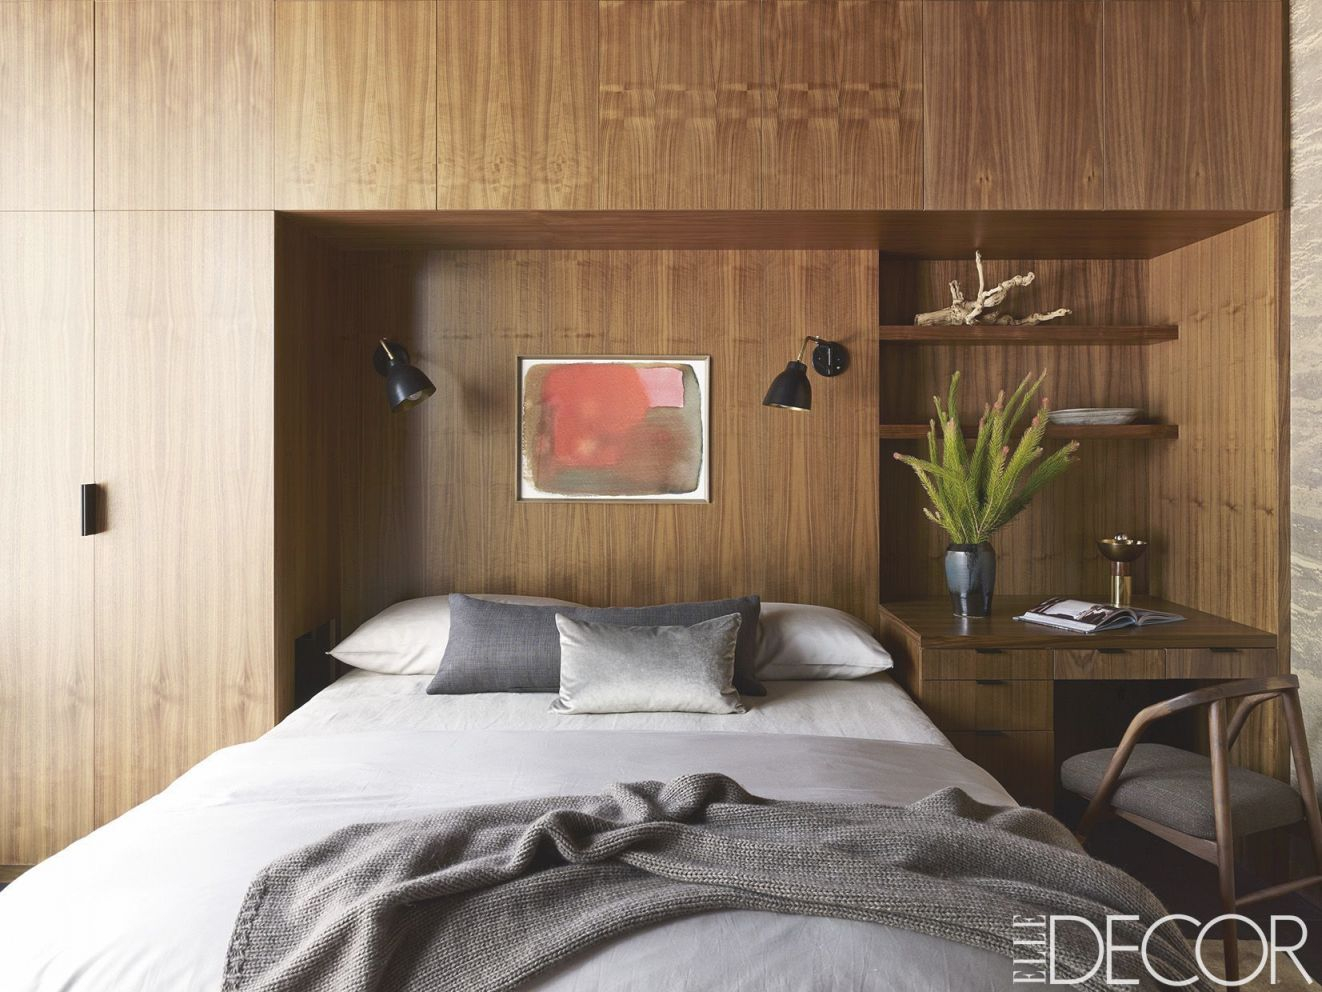 55 Small Bedroom Design Ideas – Decorating Tips For Small within Beautiful Decorative Ideas For Bedroom